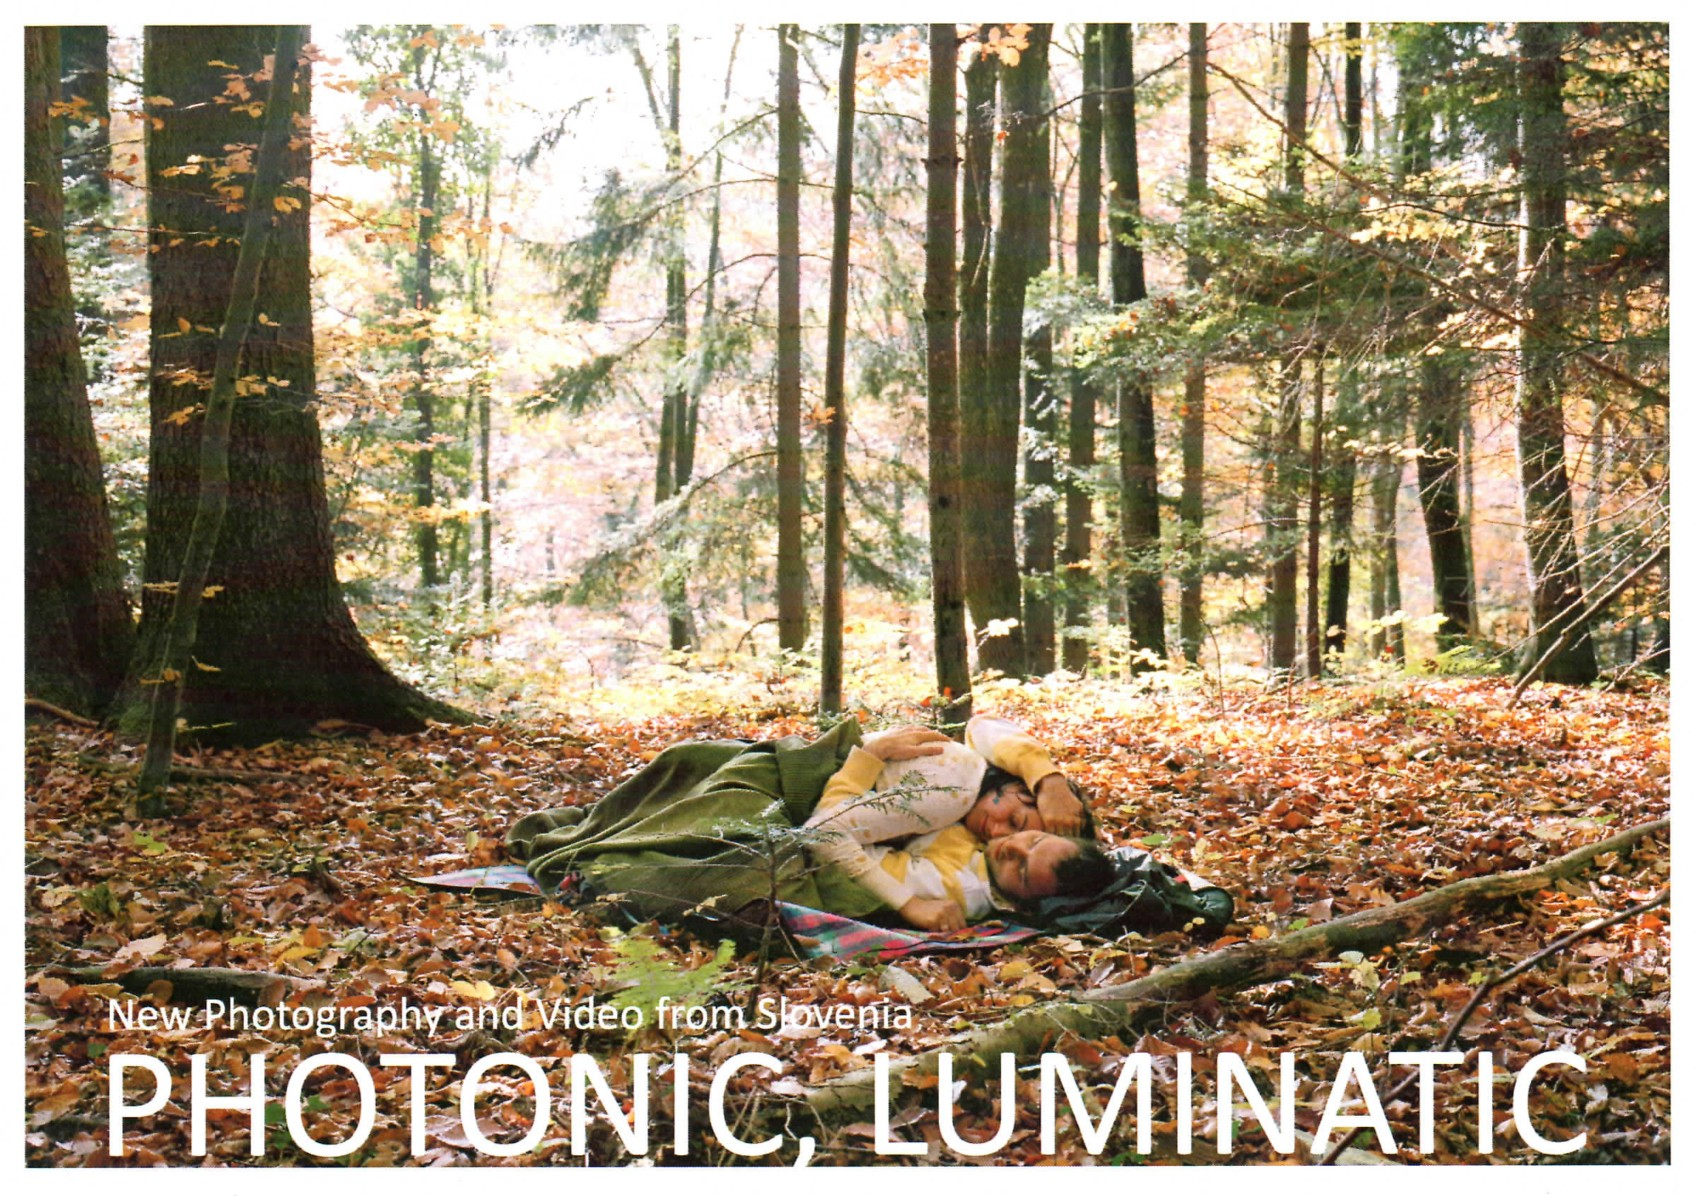 PHOTONIC LUMINATIC: on tour